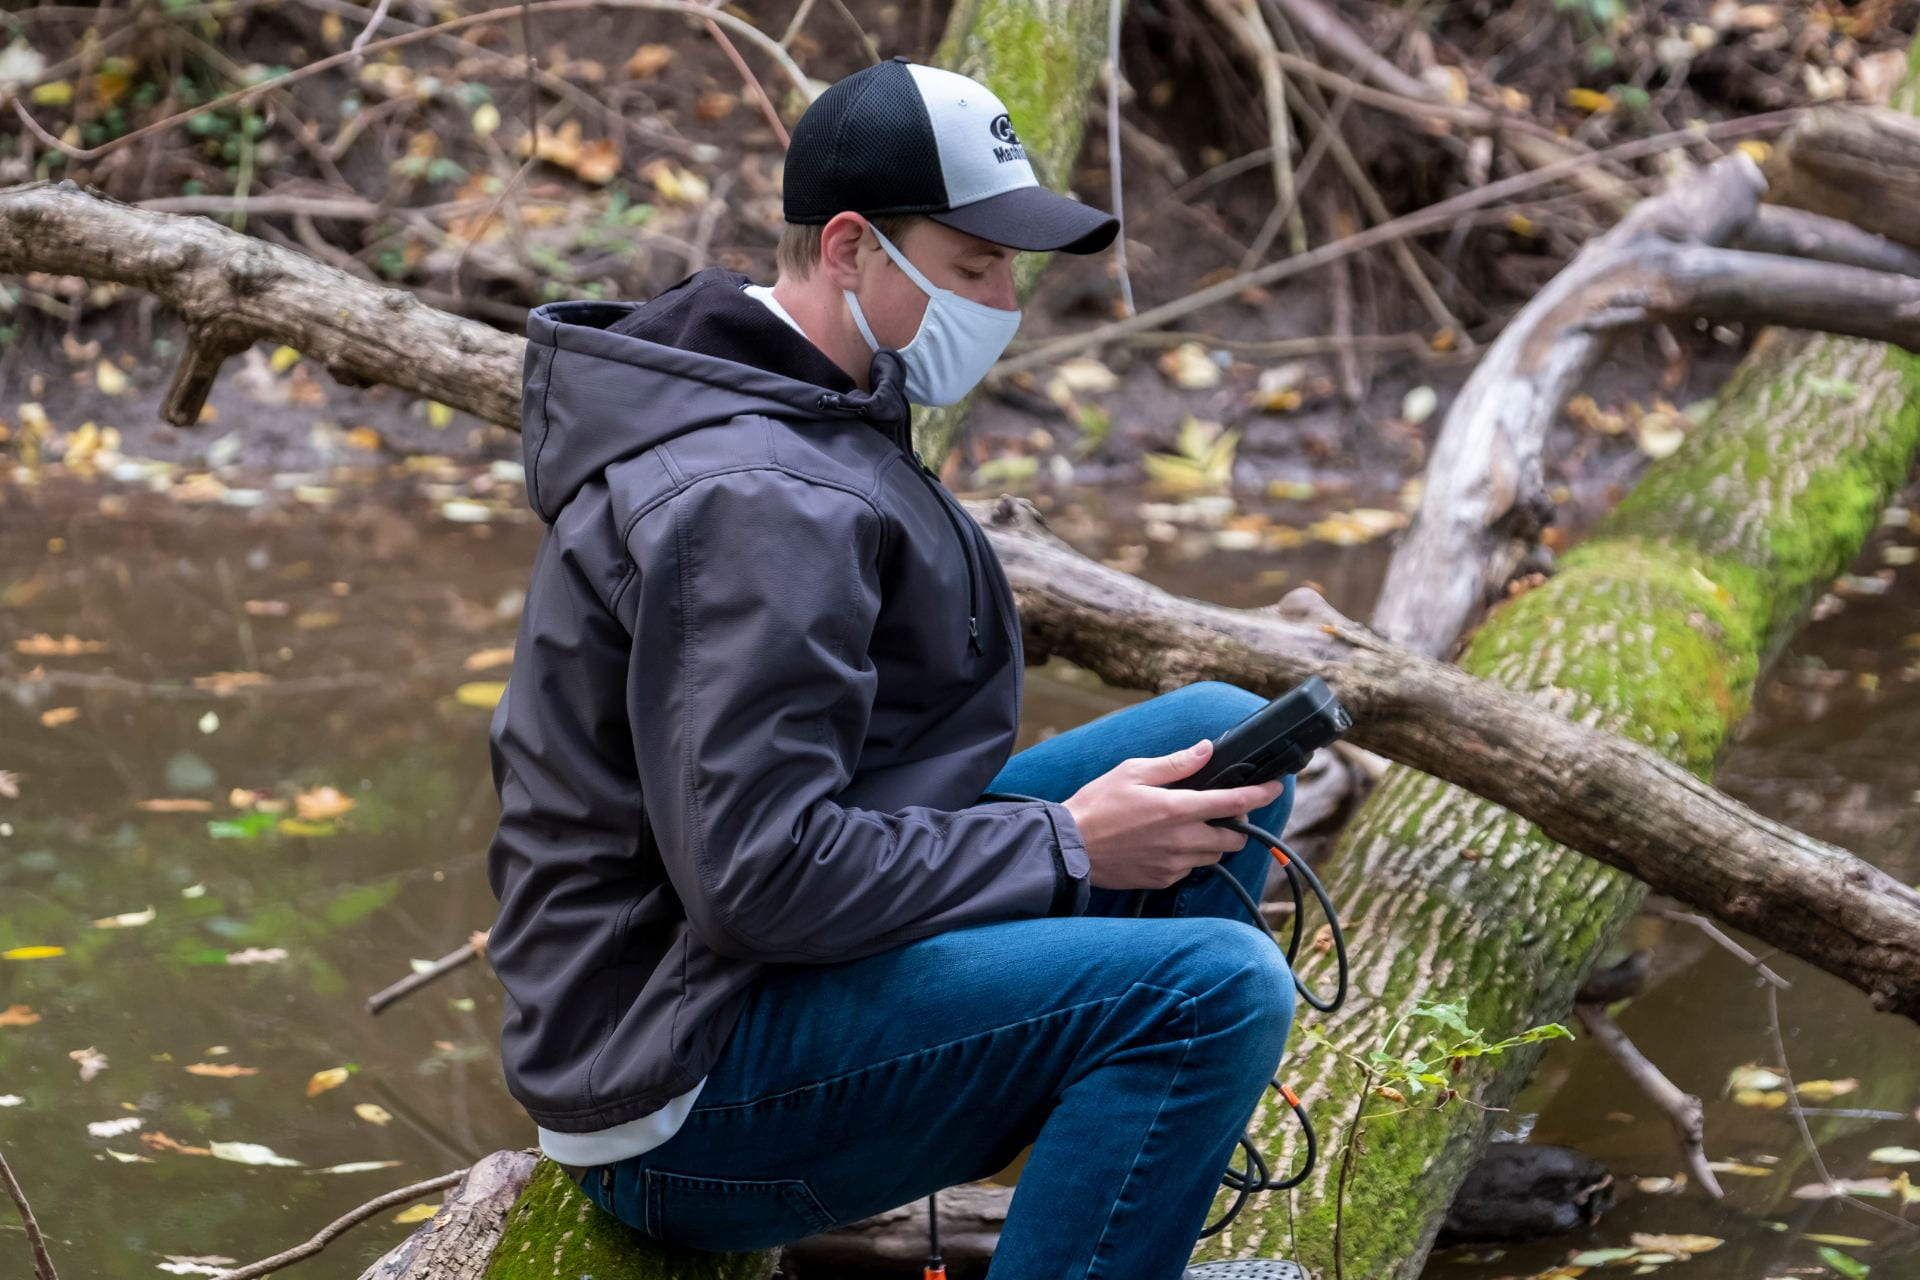 Students in Assistant Professor Kelly Deuerling's Geochemistry of Natural Waters' outdoor lab use a field instrument to test the water at the mouth of the Mahon Creek in the Cofrin Memorial Arboretum at the University of Wisconsin-Green Bay campus.